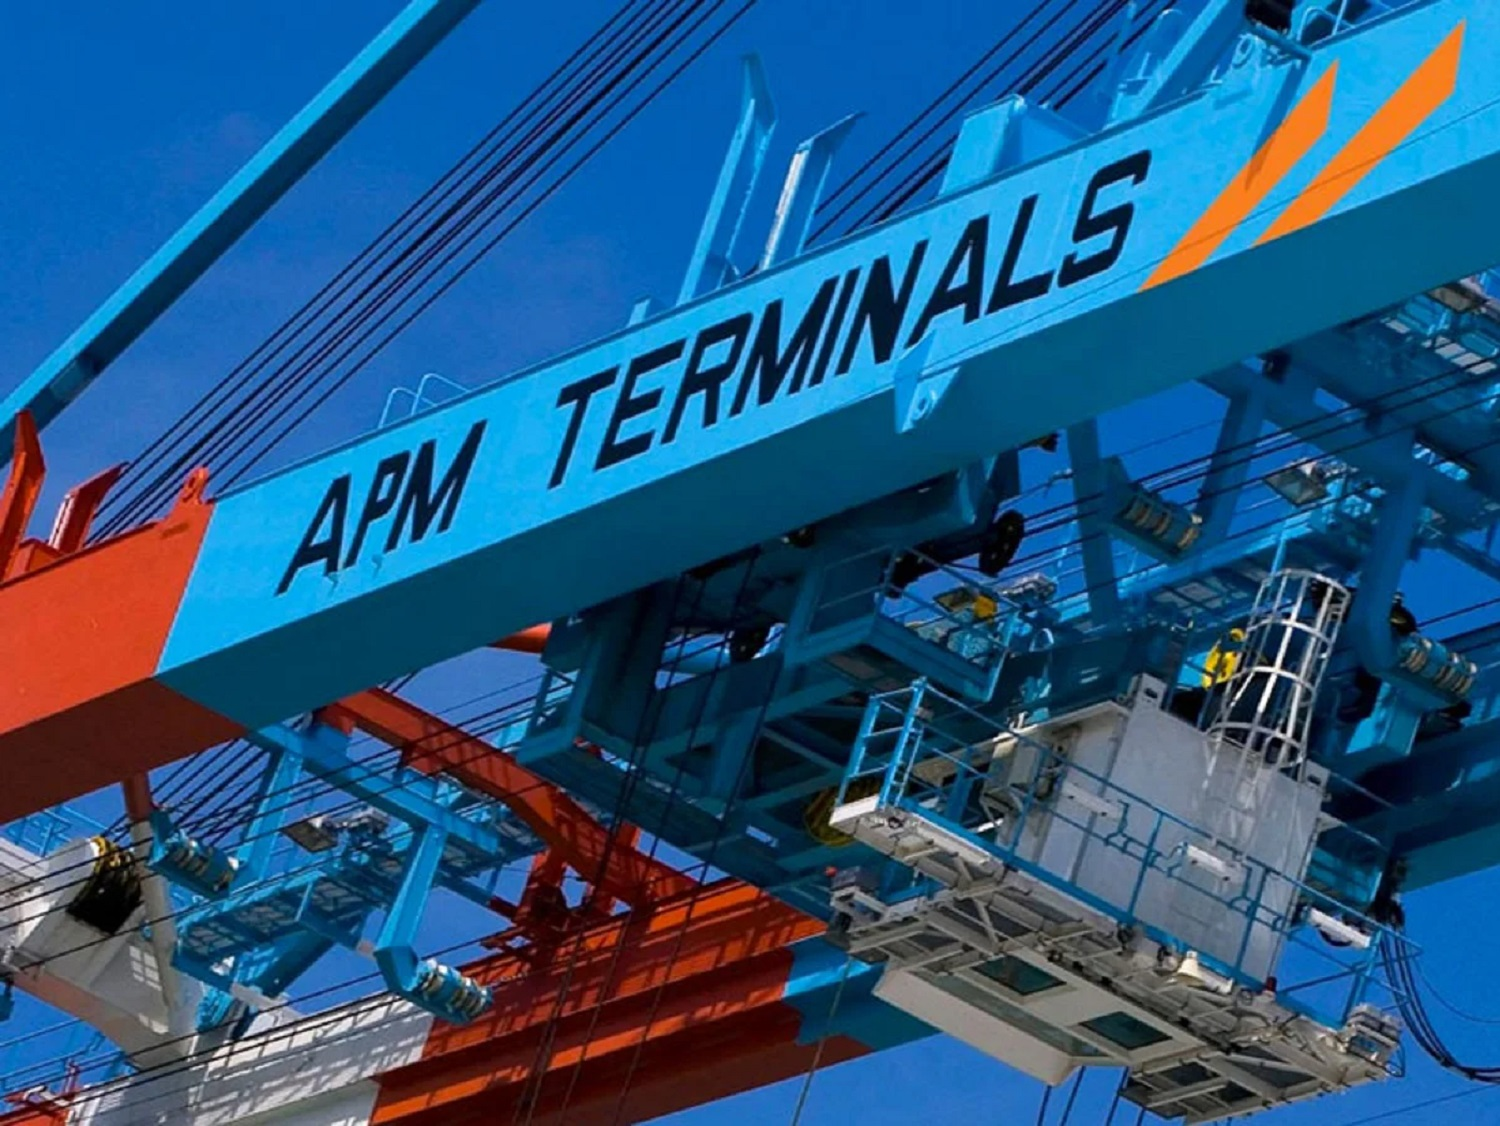 APM Terminals staff tests positive for COVID-19